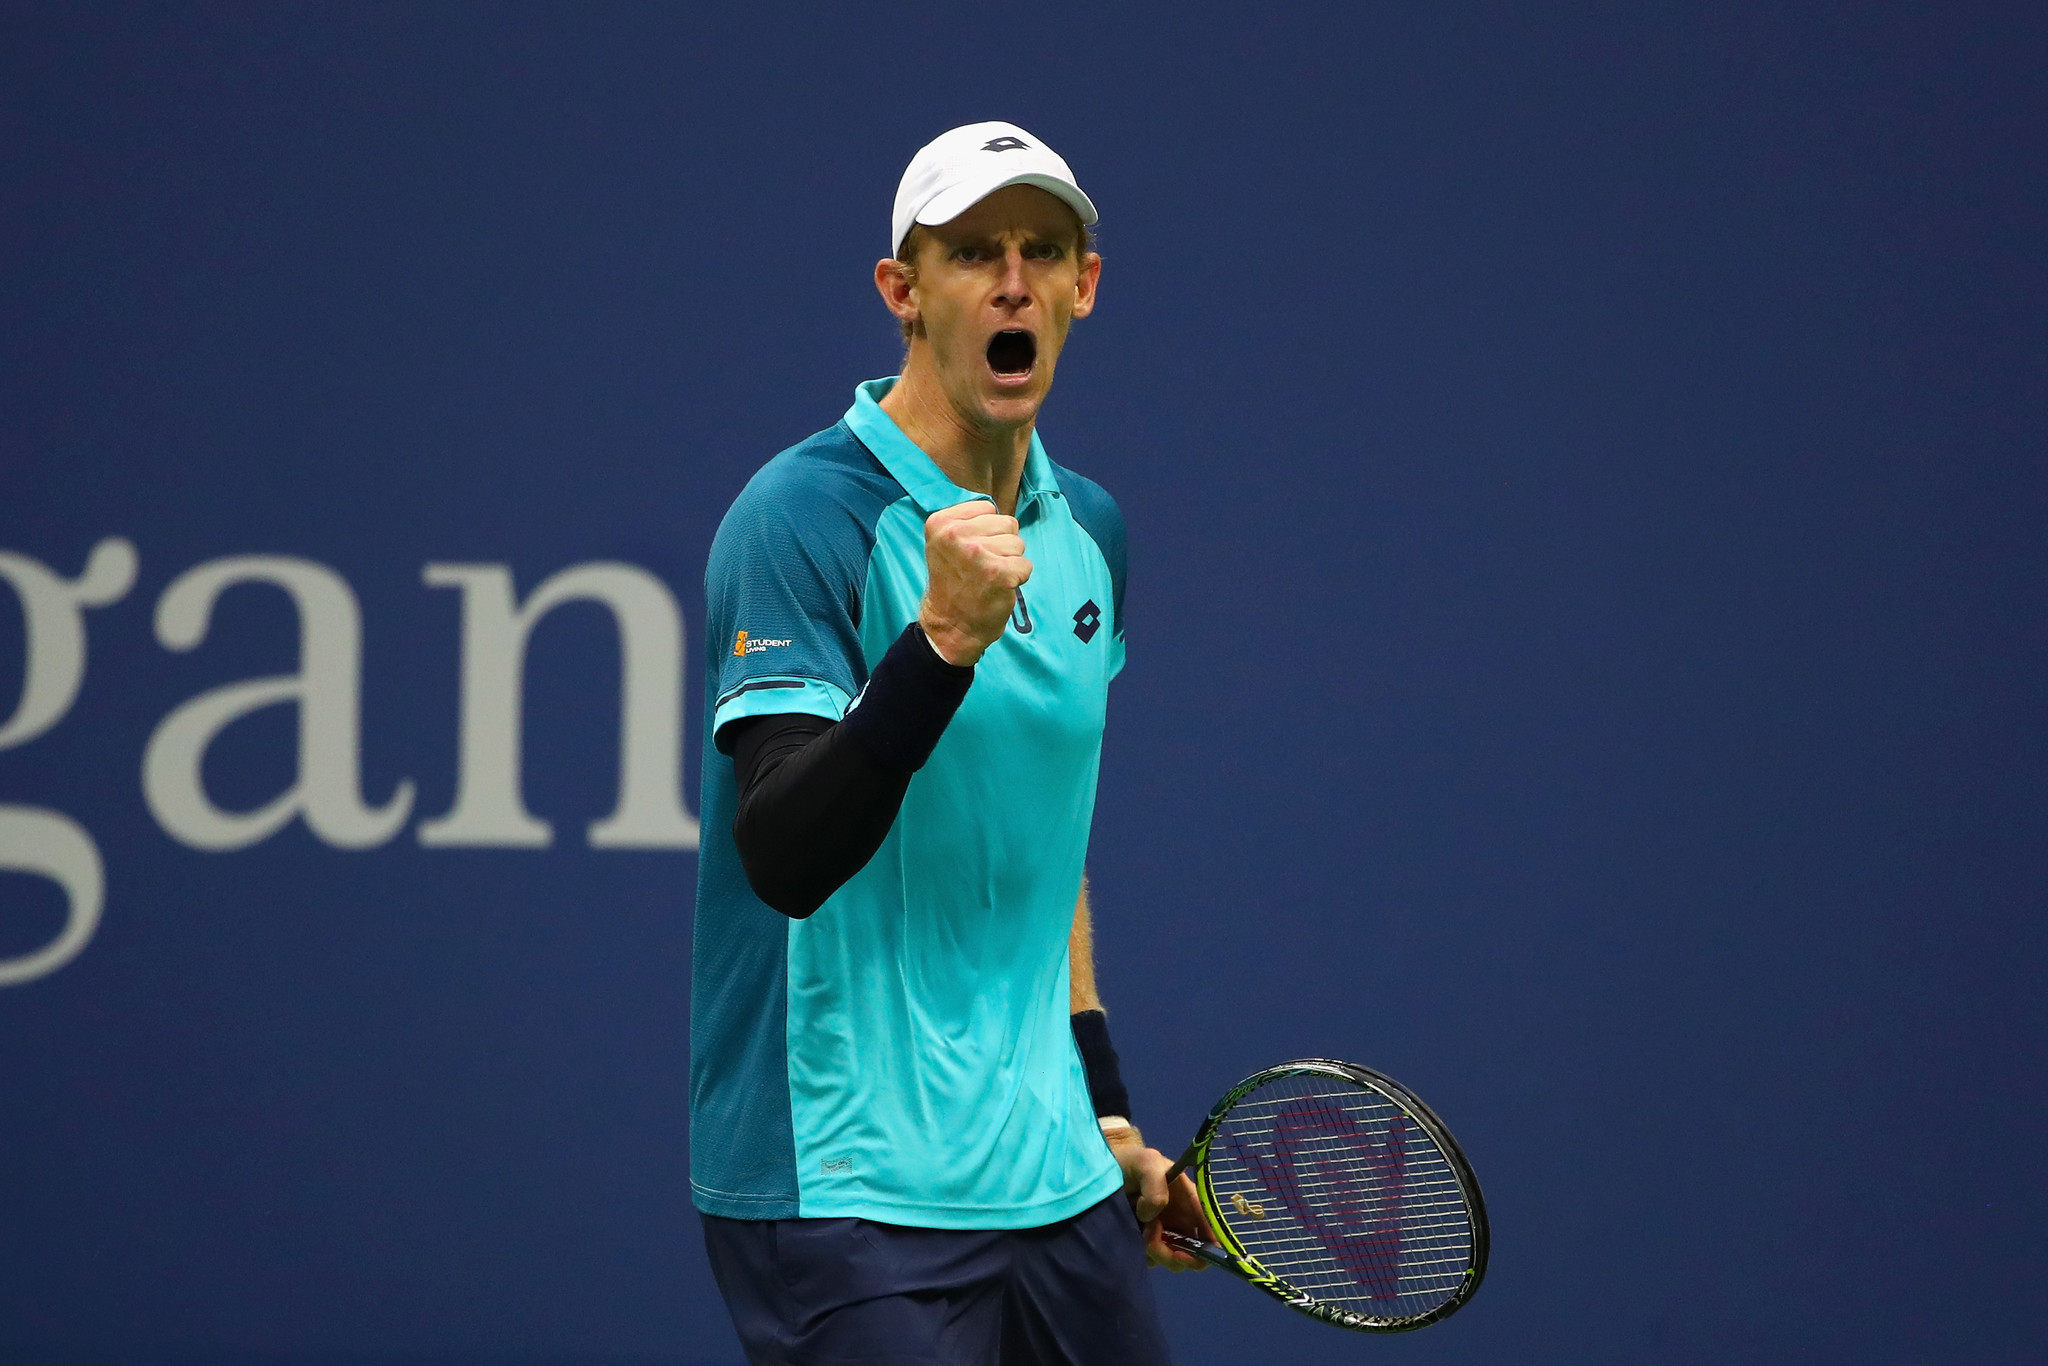 Former Illini athlete Kevin Anderson into U.S. Open final, will face Rafael Nadal - Chicago Tribune